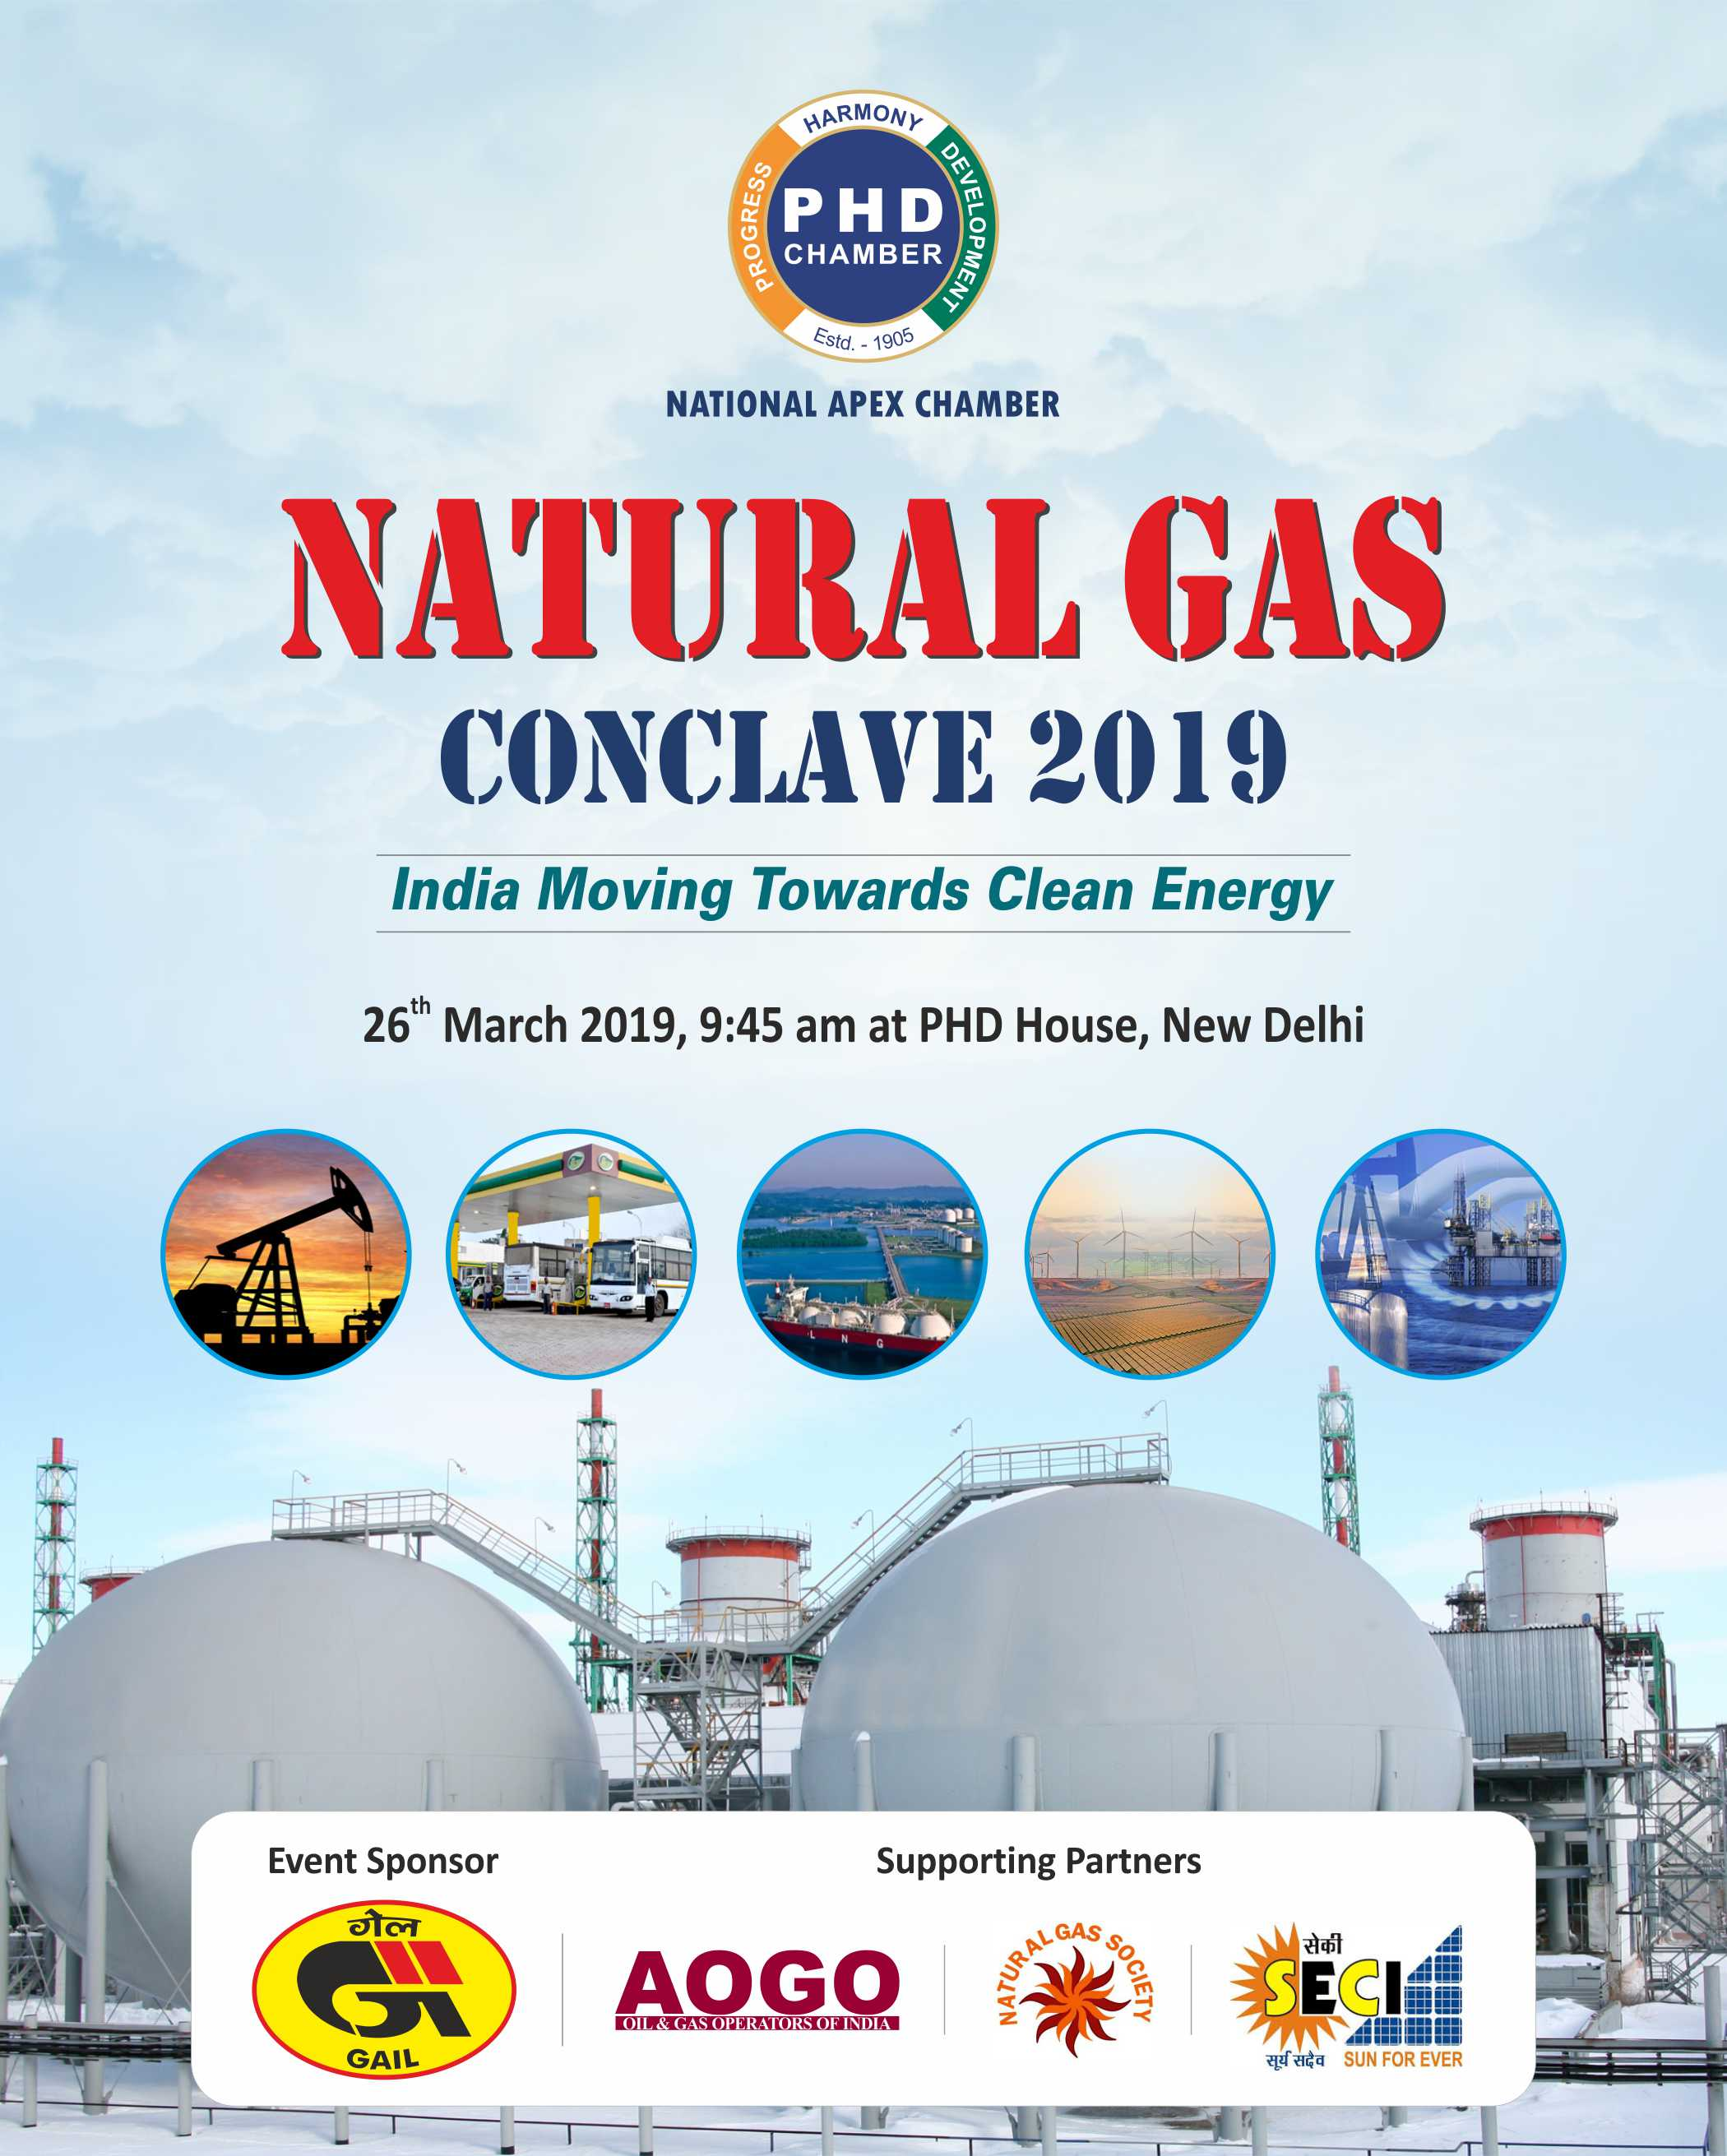 Natural Gas Conclave 2019 – India Moving towards Clean Energy